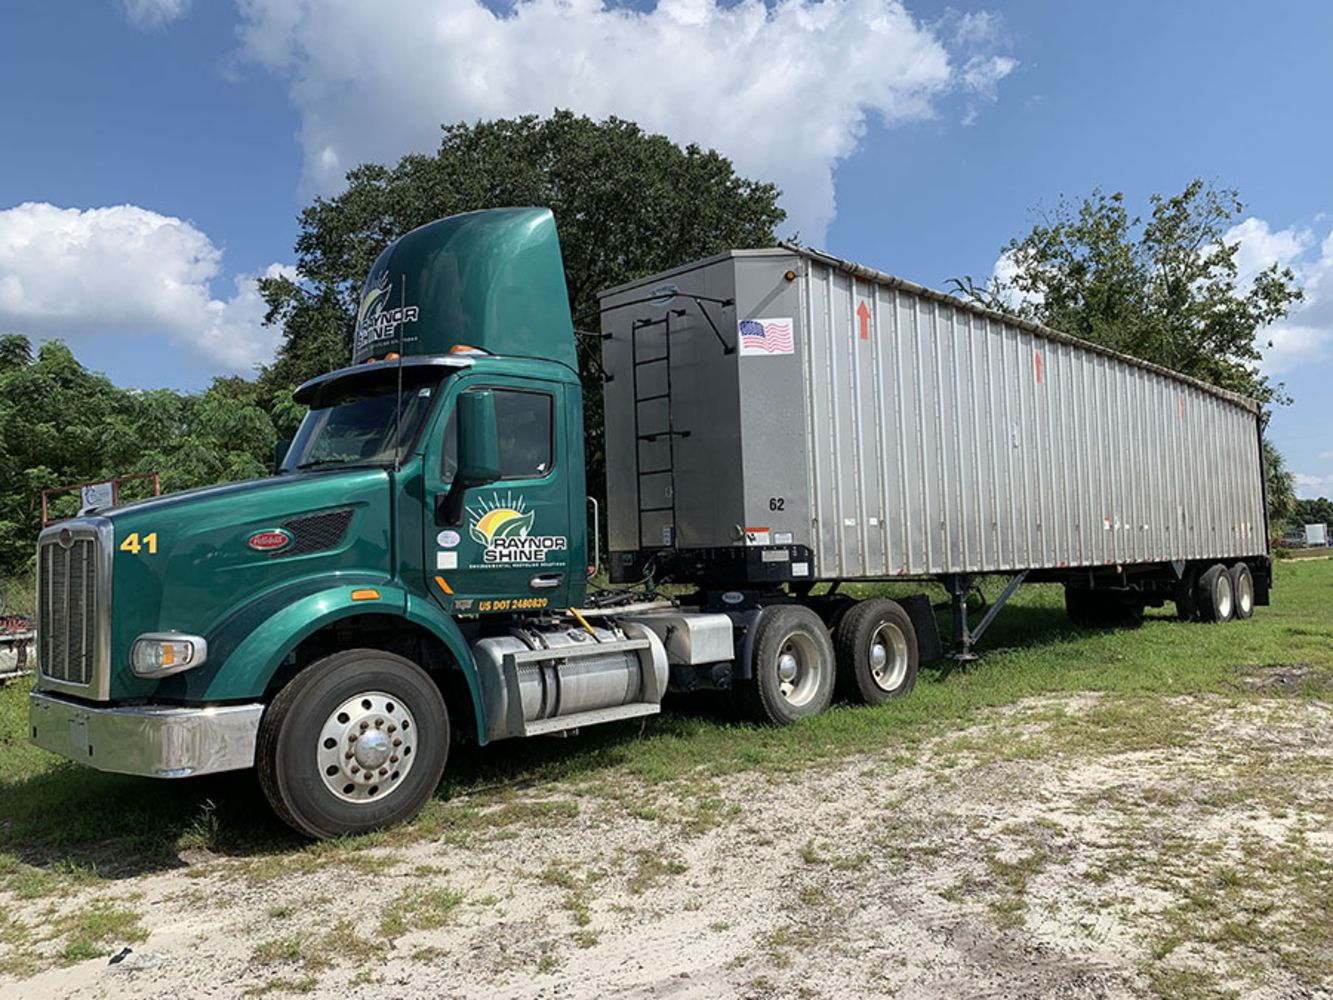 Raynor Shine Services, LLC - Land Clearing Equipment, Truck Tractors, Trailers, All-Terrain Forklifts